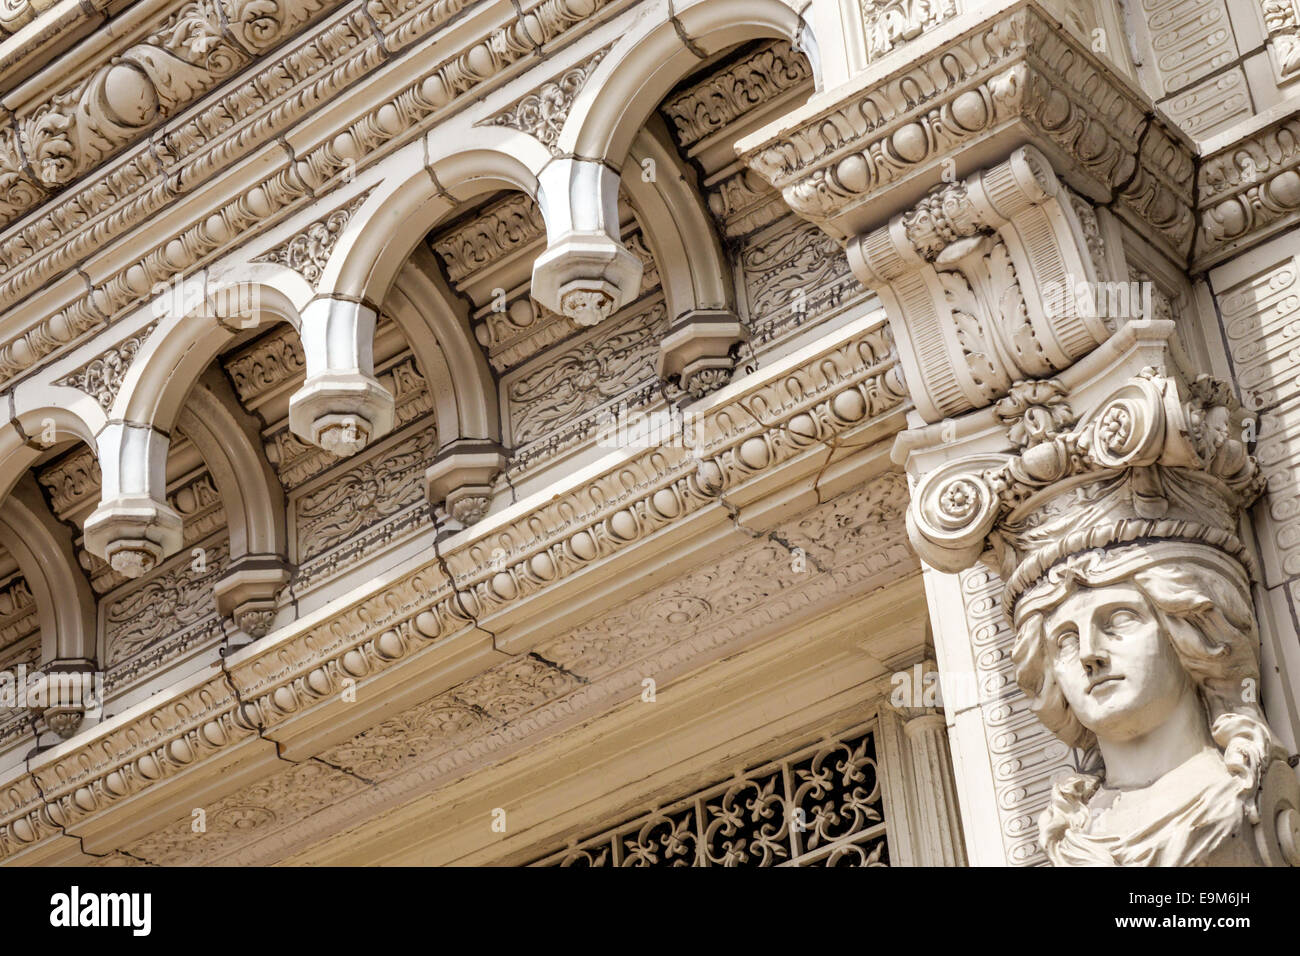 St. Louis Missouri Saint Railway Exchange Building high rise office building Chicago school architectural style - Stock Image